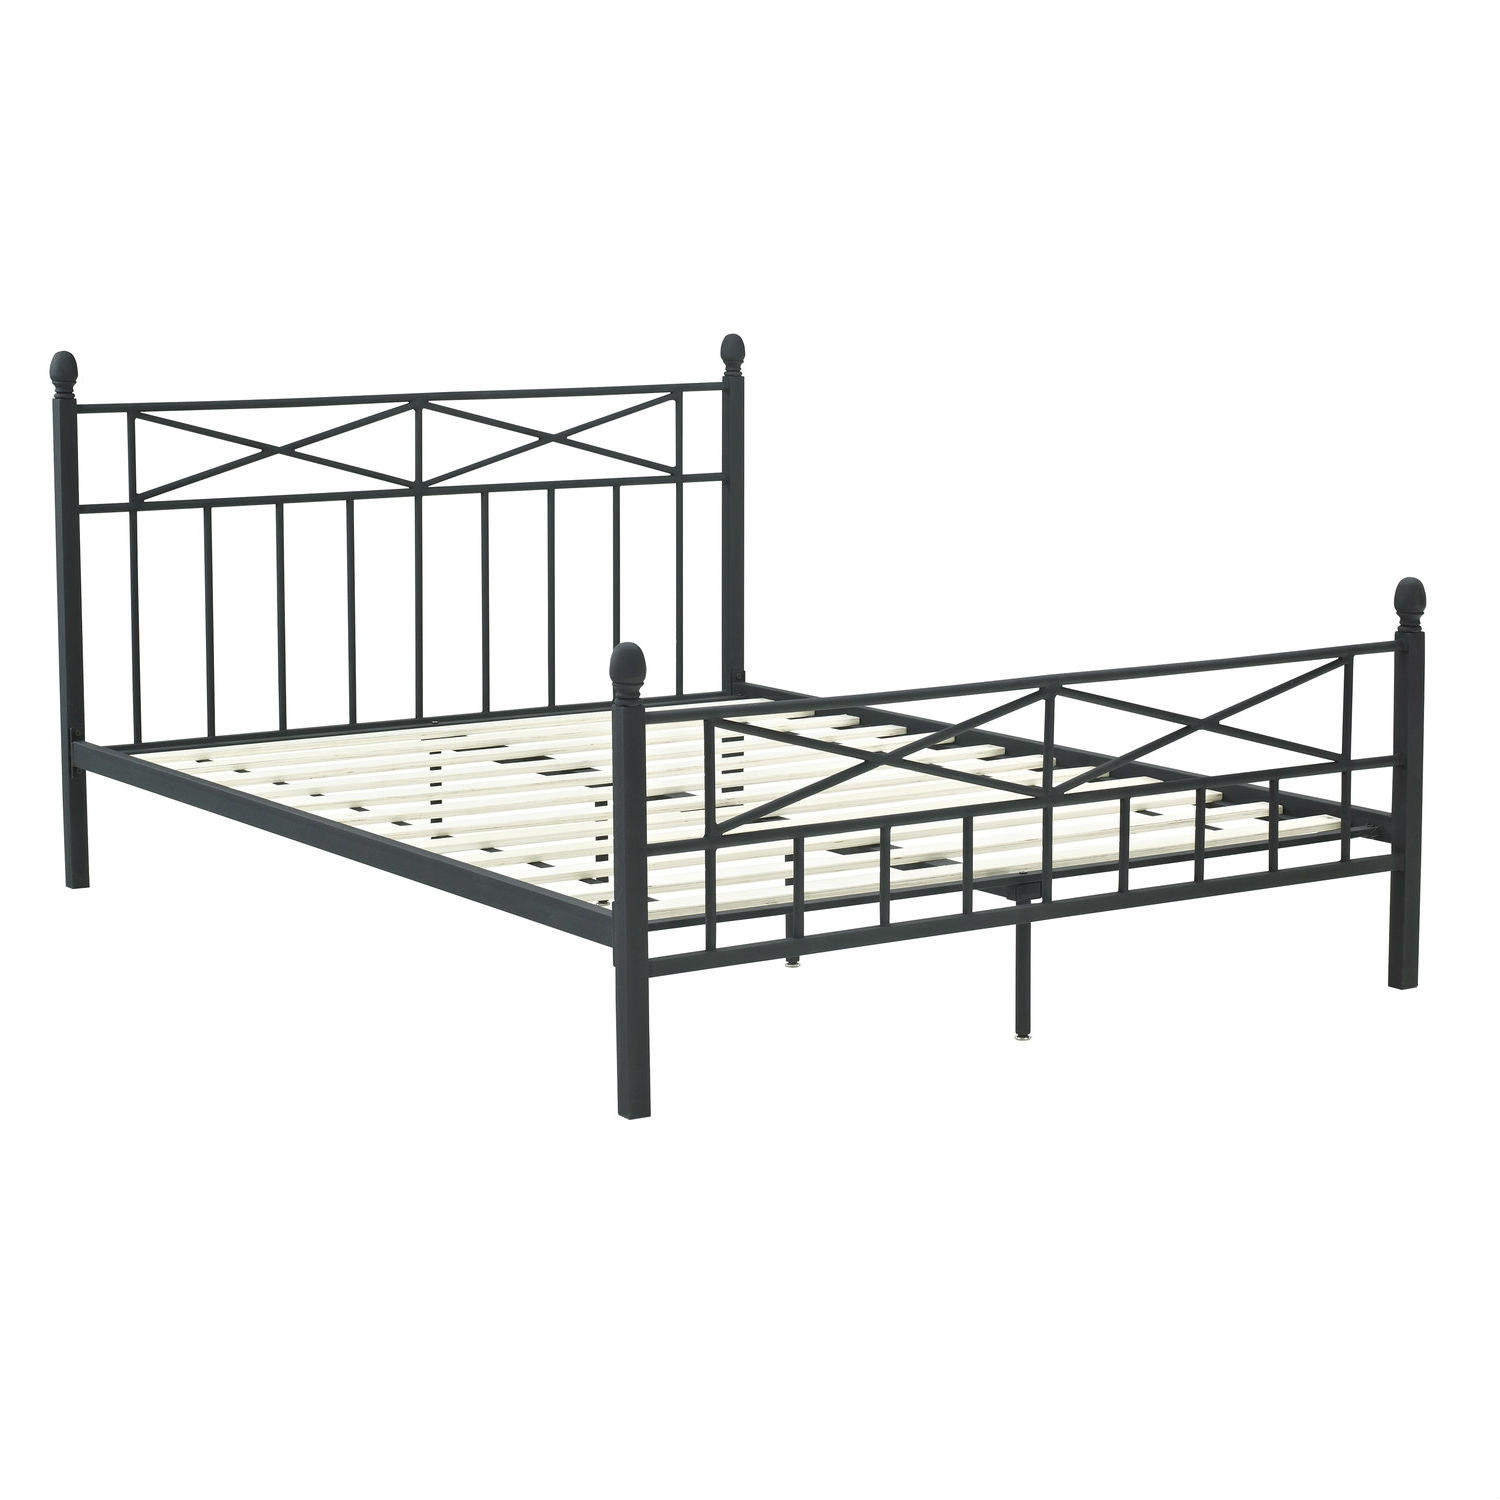 queen size matte black metal platform bed frame with headboard footboard and wooden slats - Black Platform Bed Frame